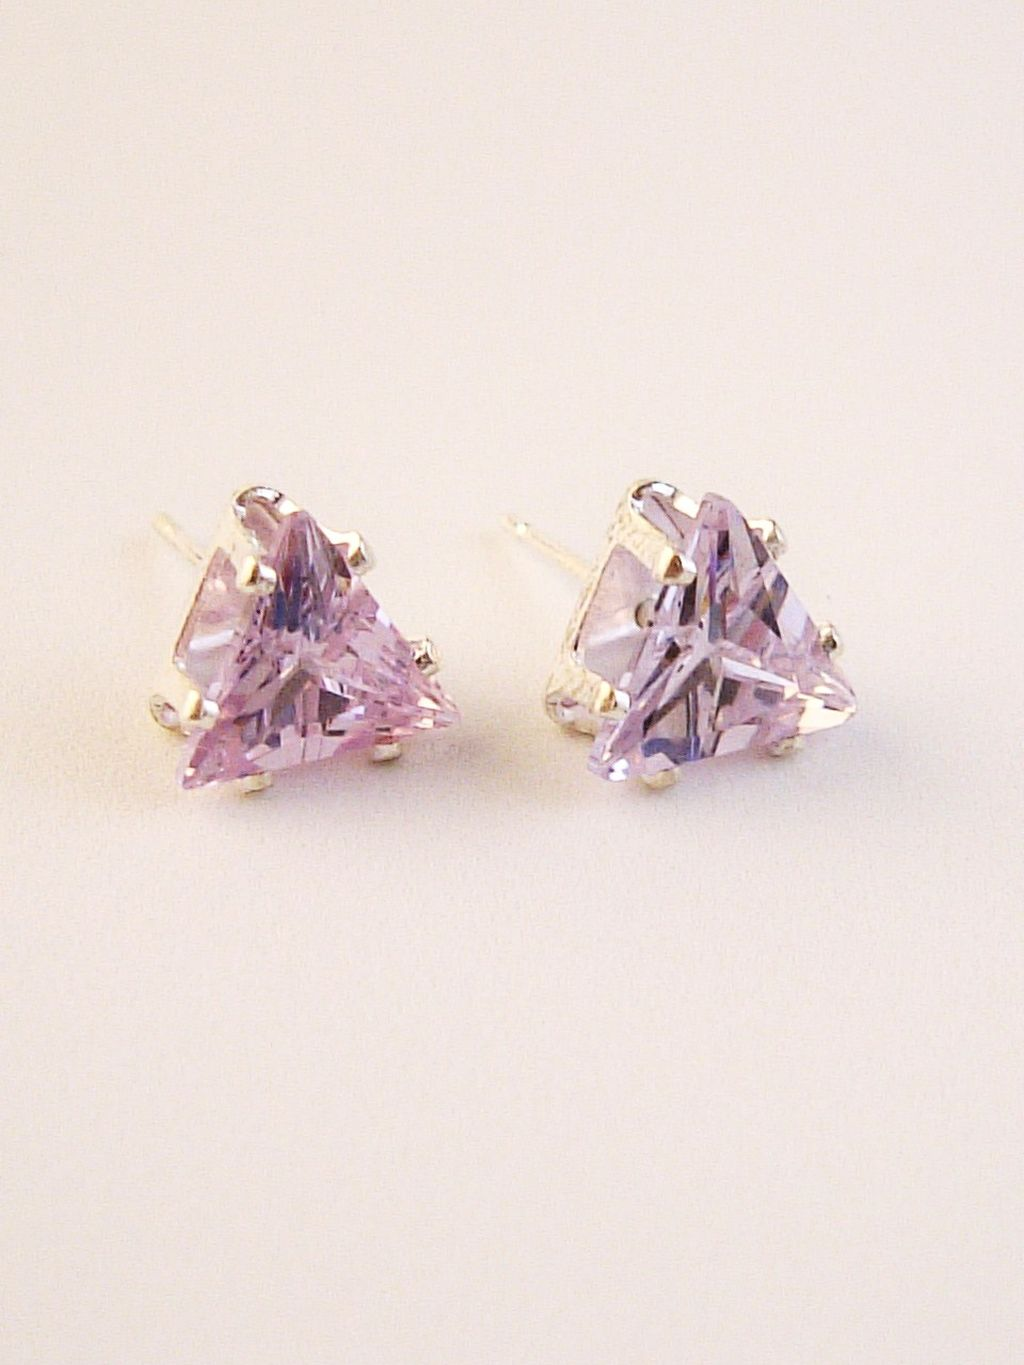 Alexandrite Triangle Cut Silver Stud Earrings Genuine CZ Cubic Zirconia